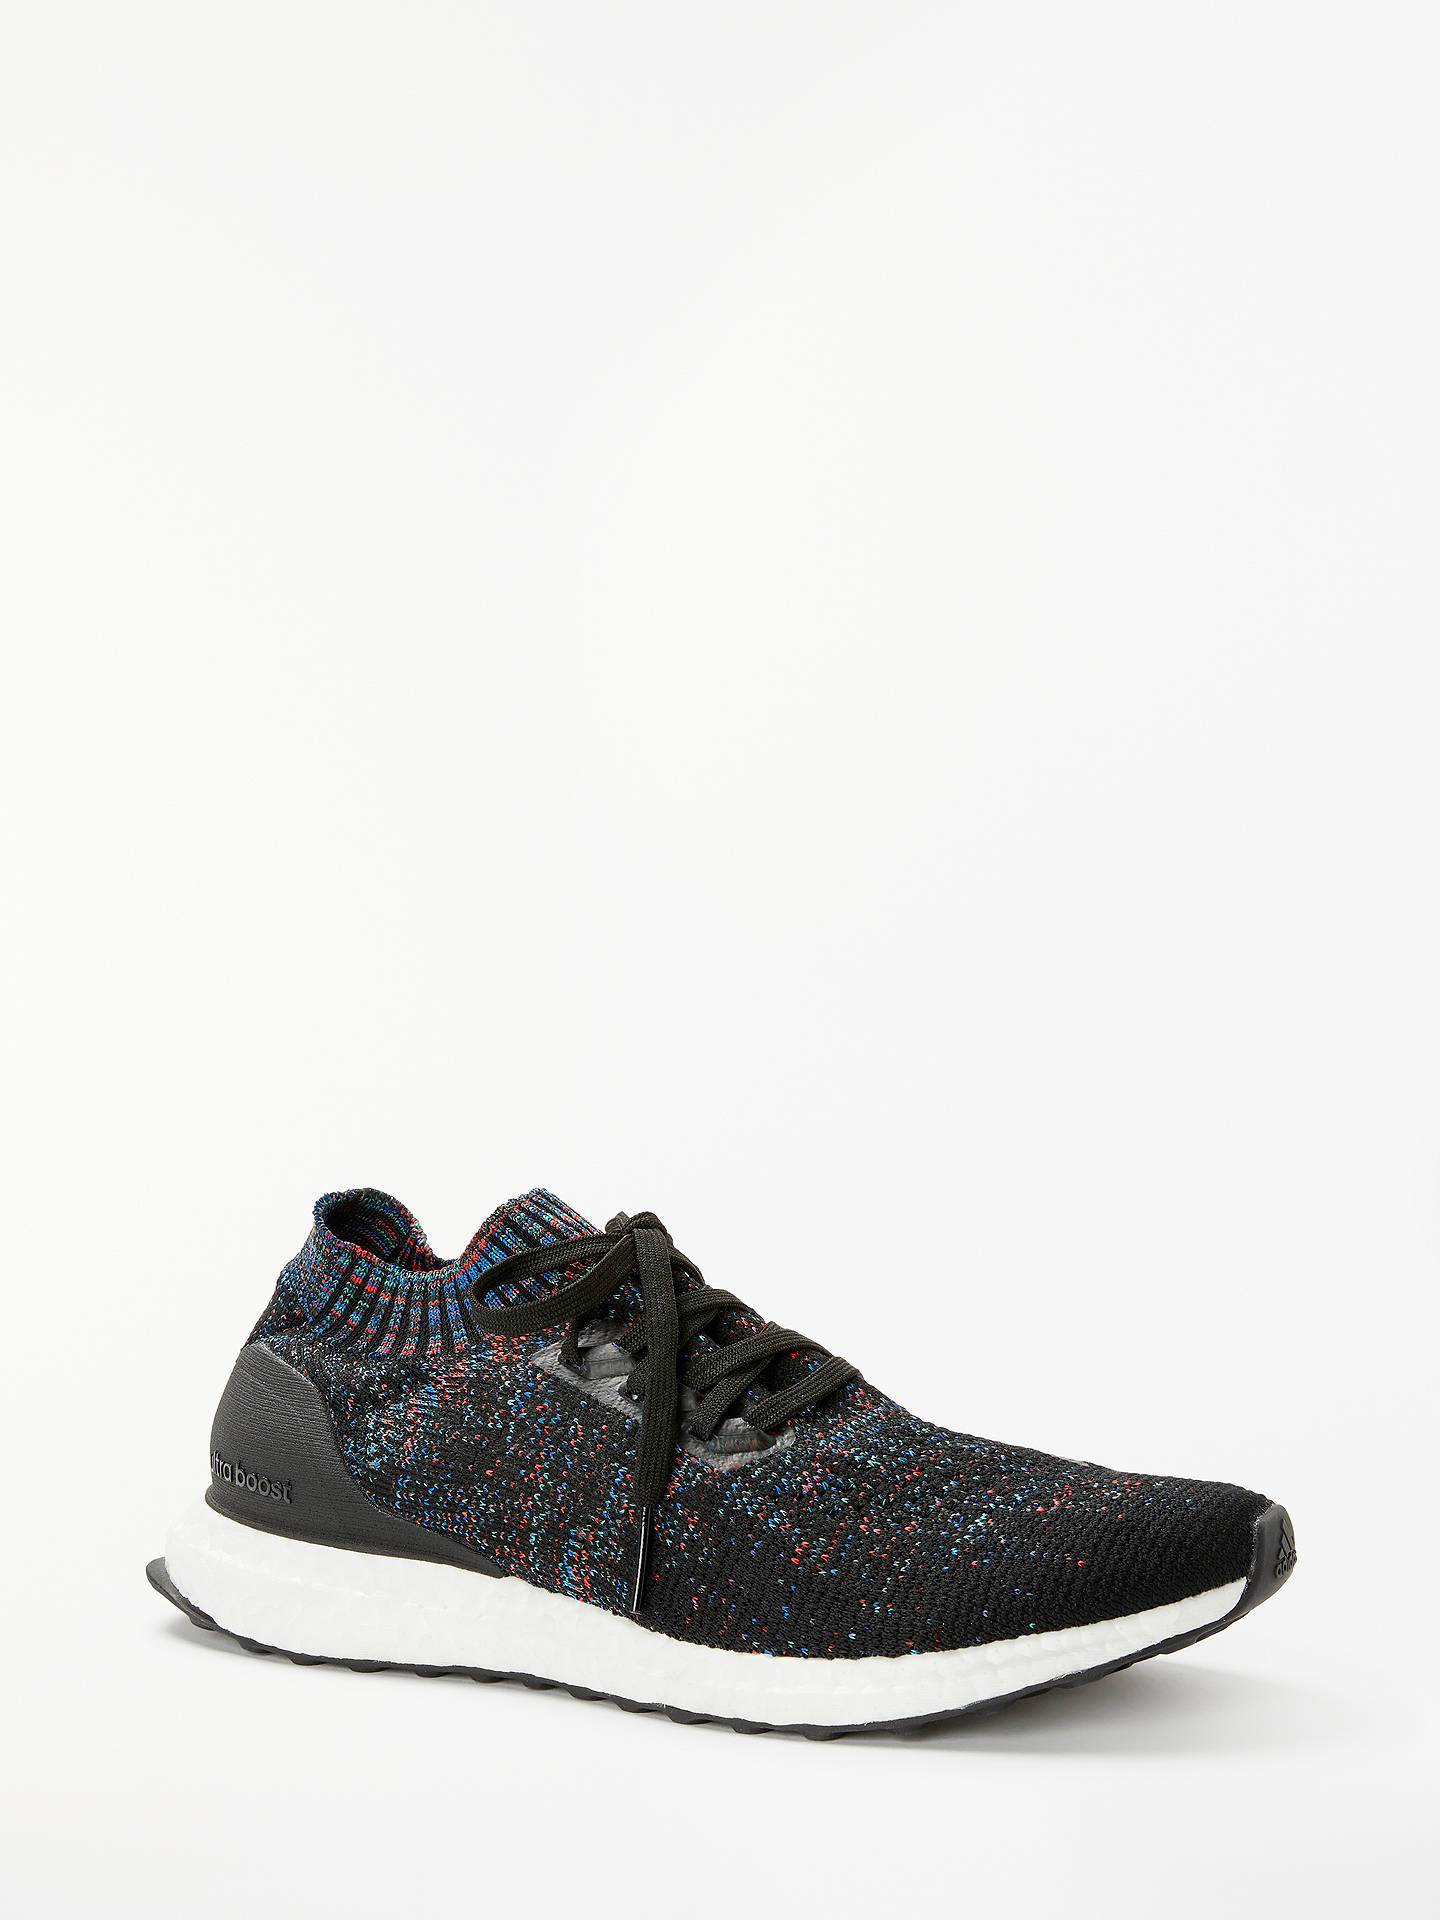 half off cee2b 6a4bf ... Buy adidas UltraBOOST Uncaged Men s Running Shoes, Core Black Active  Red, 7 Online ...